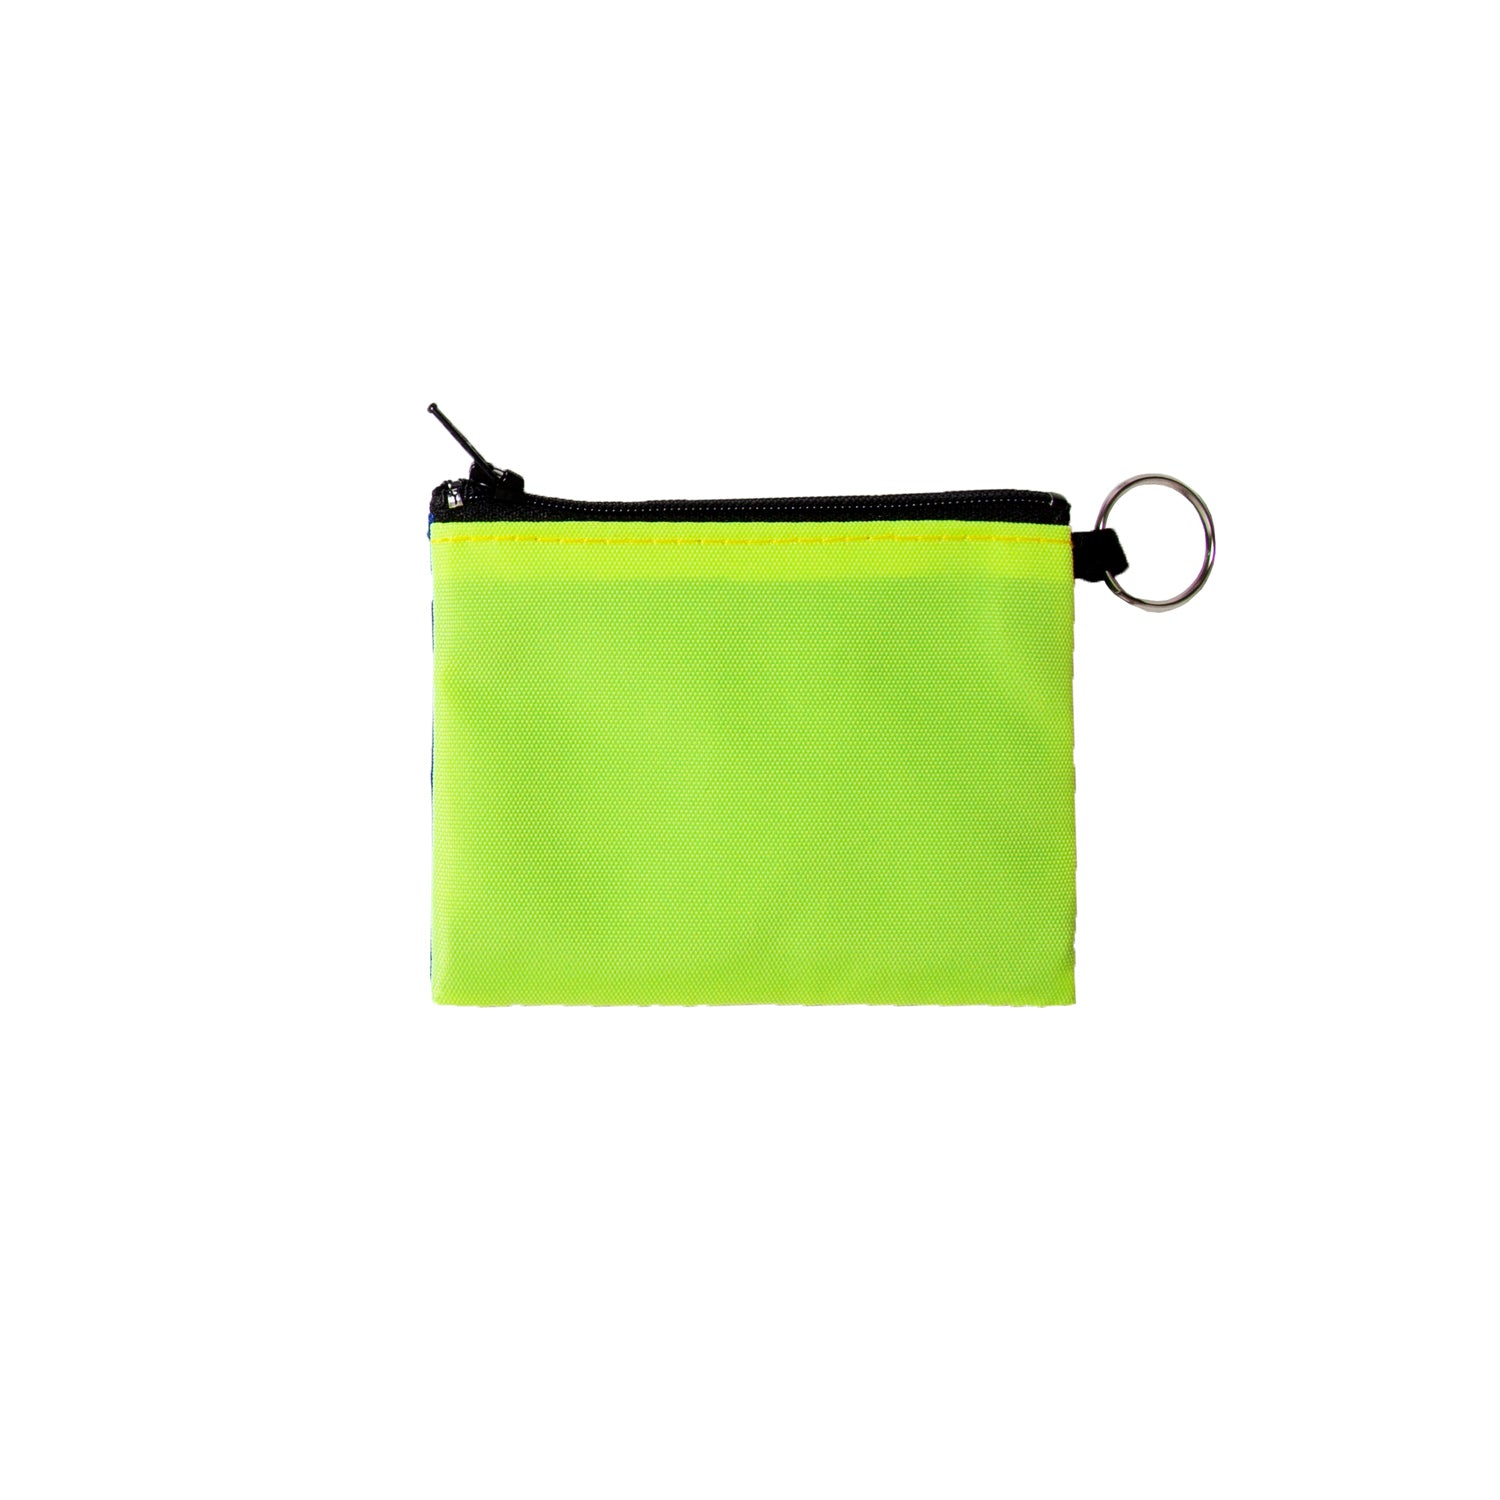 Two-Tone Utility Pouch - Small